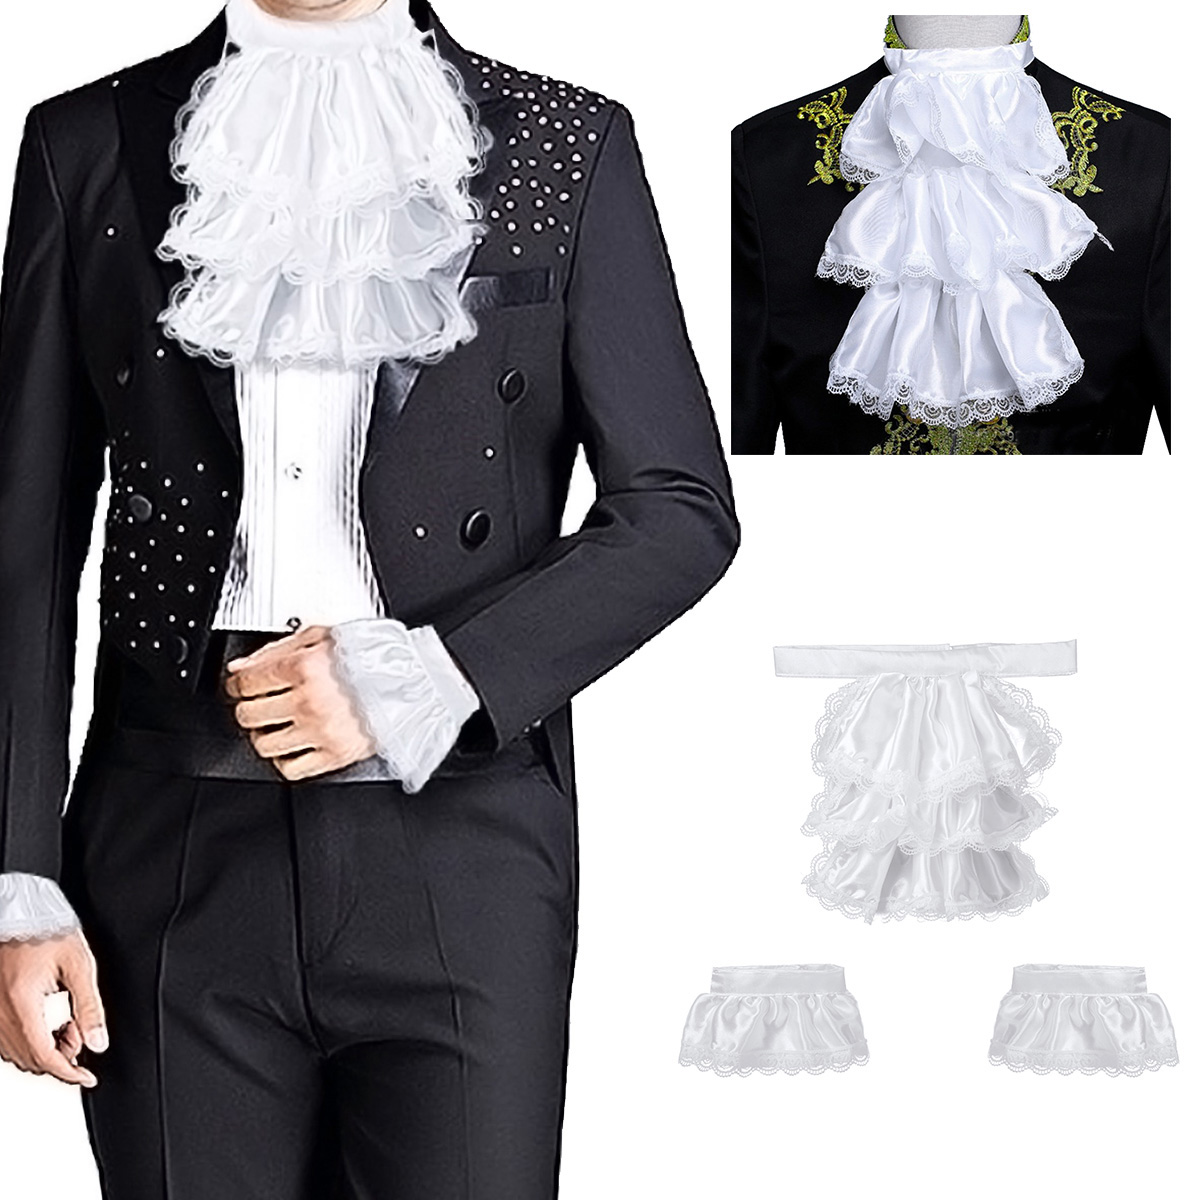 Adults Mens Victorian Lace Jabot And Cuffs For Kids Detachable Collar Stage Party Colonial Pirate Steampunk Costume Accessory